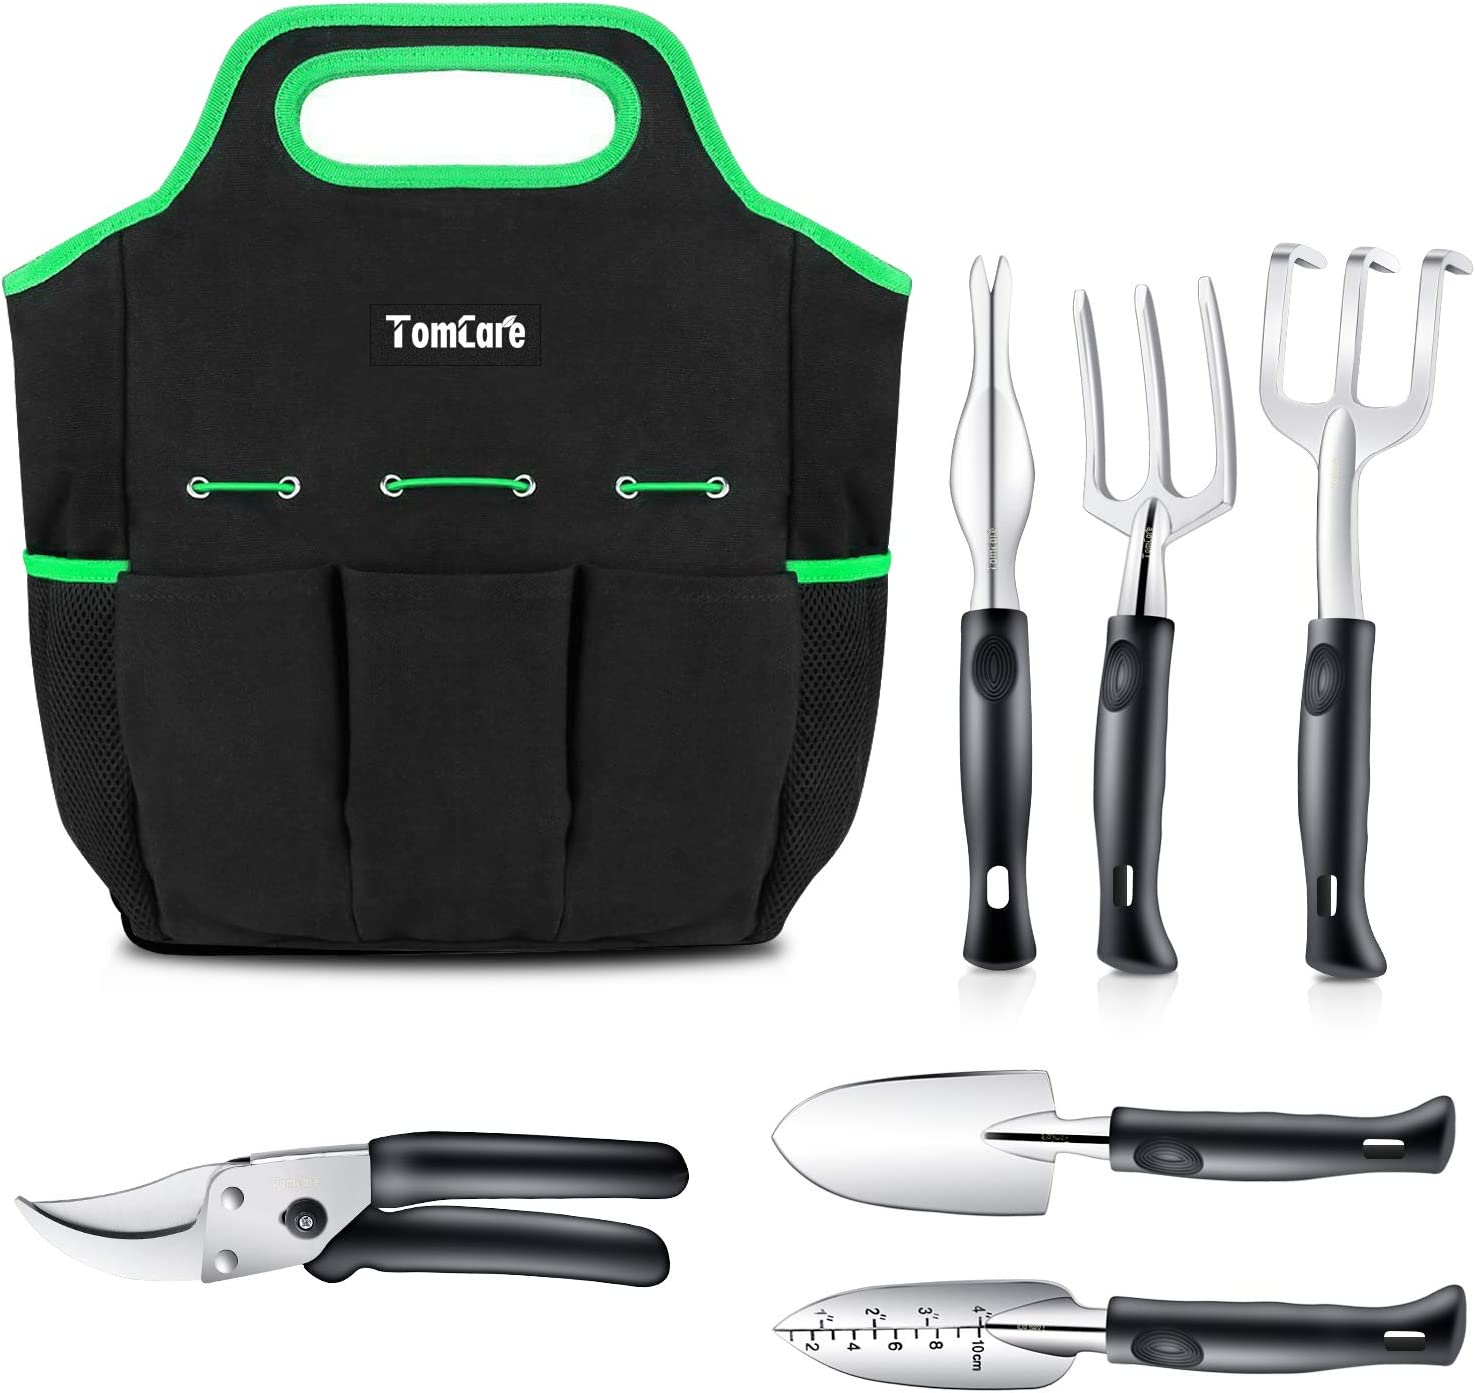 TomCare Garden Tools Set 7 Piece Gardening Tools Gardening kit Tool Sets with Heavy Duty Pruning Shears Comfortable Non-Slip Handle and Durable Storage Tote Bag – Garden Gifts for Gardeners Men Women